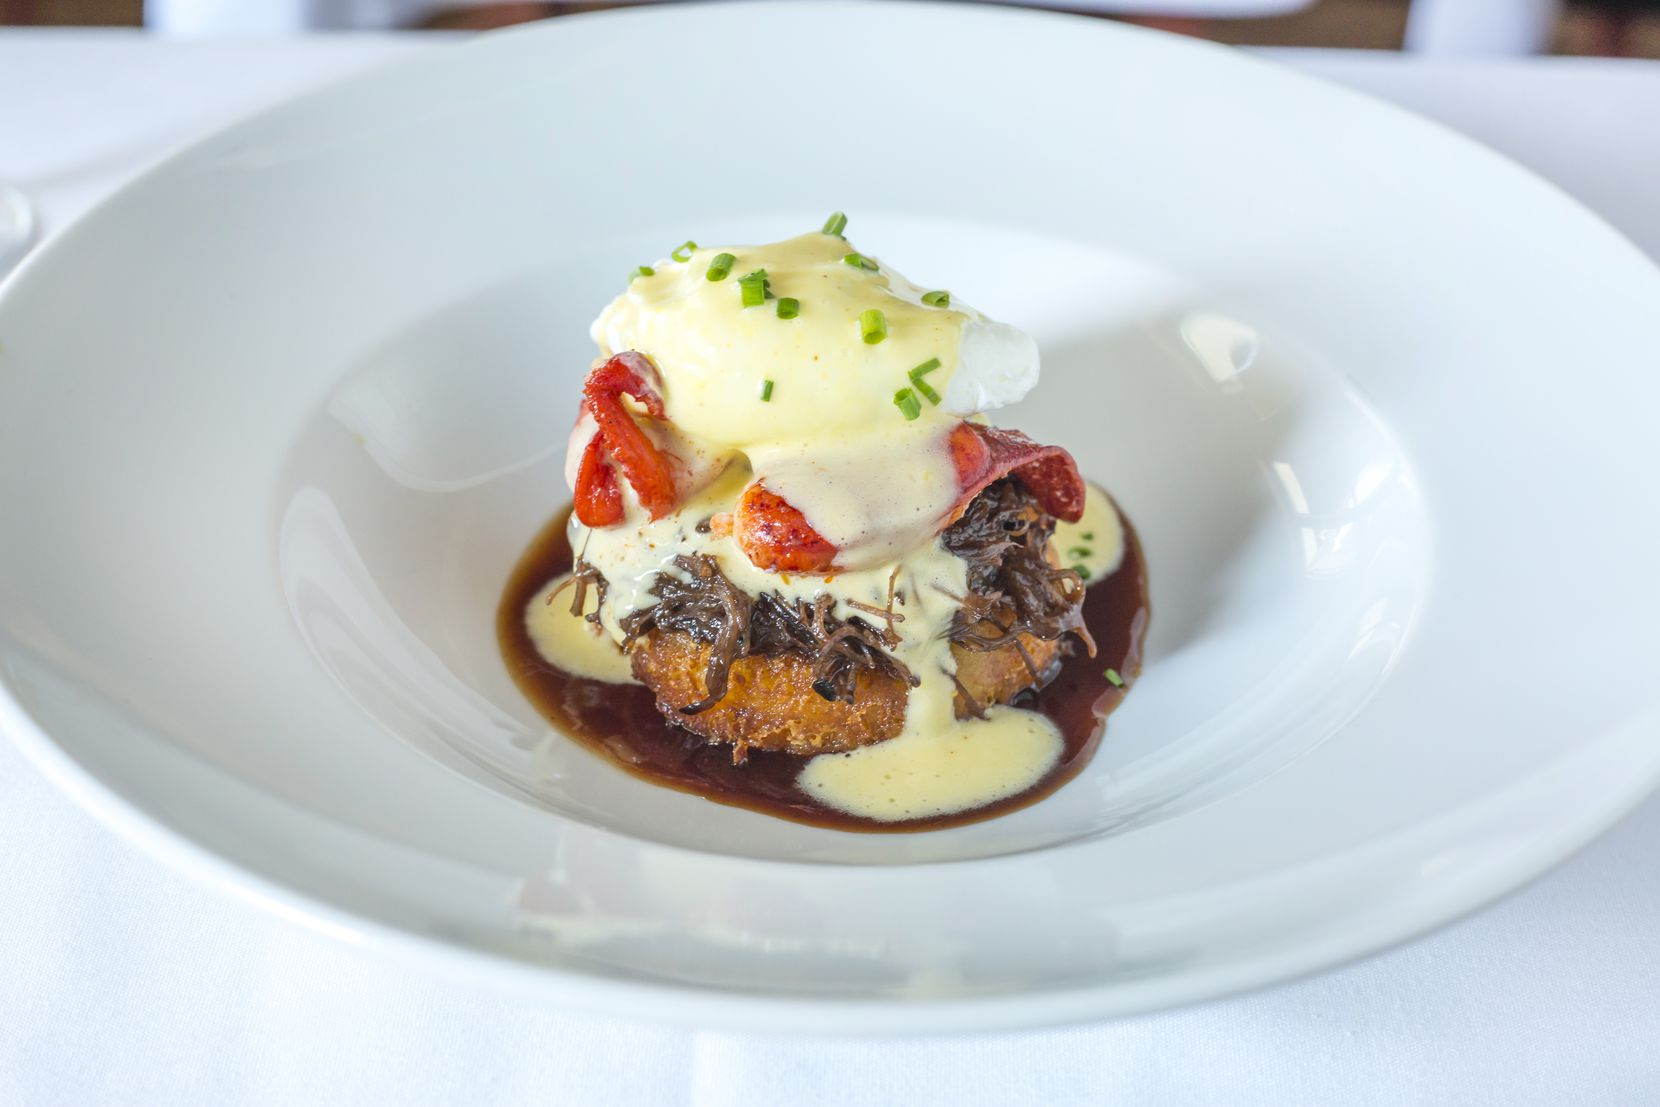 Ocean Prime's Father's Day menu includes braised short rib surf and turf with a lobster claw, poached egg, hollandaise and crispy gouda potato cake.